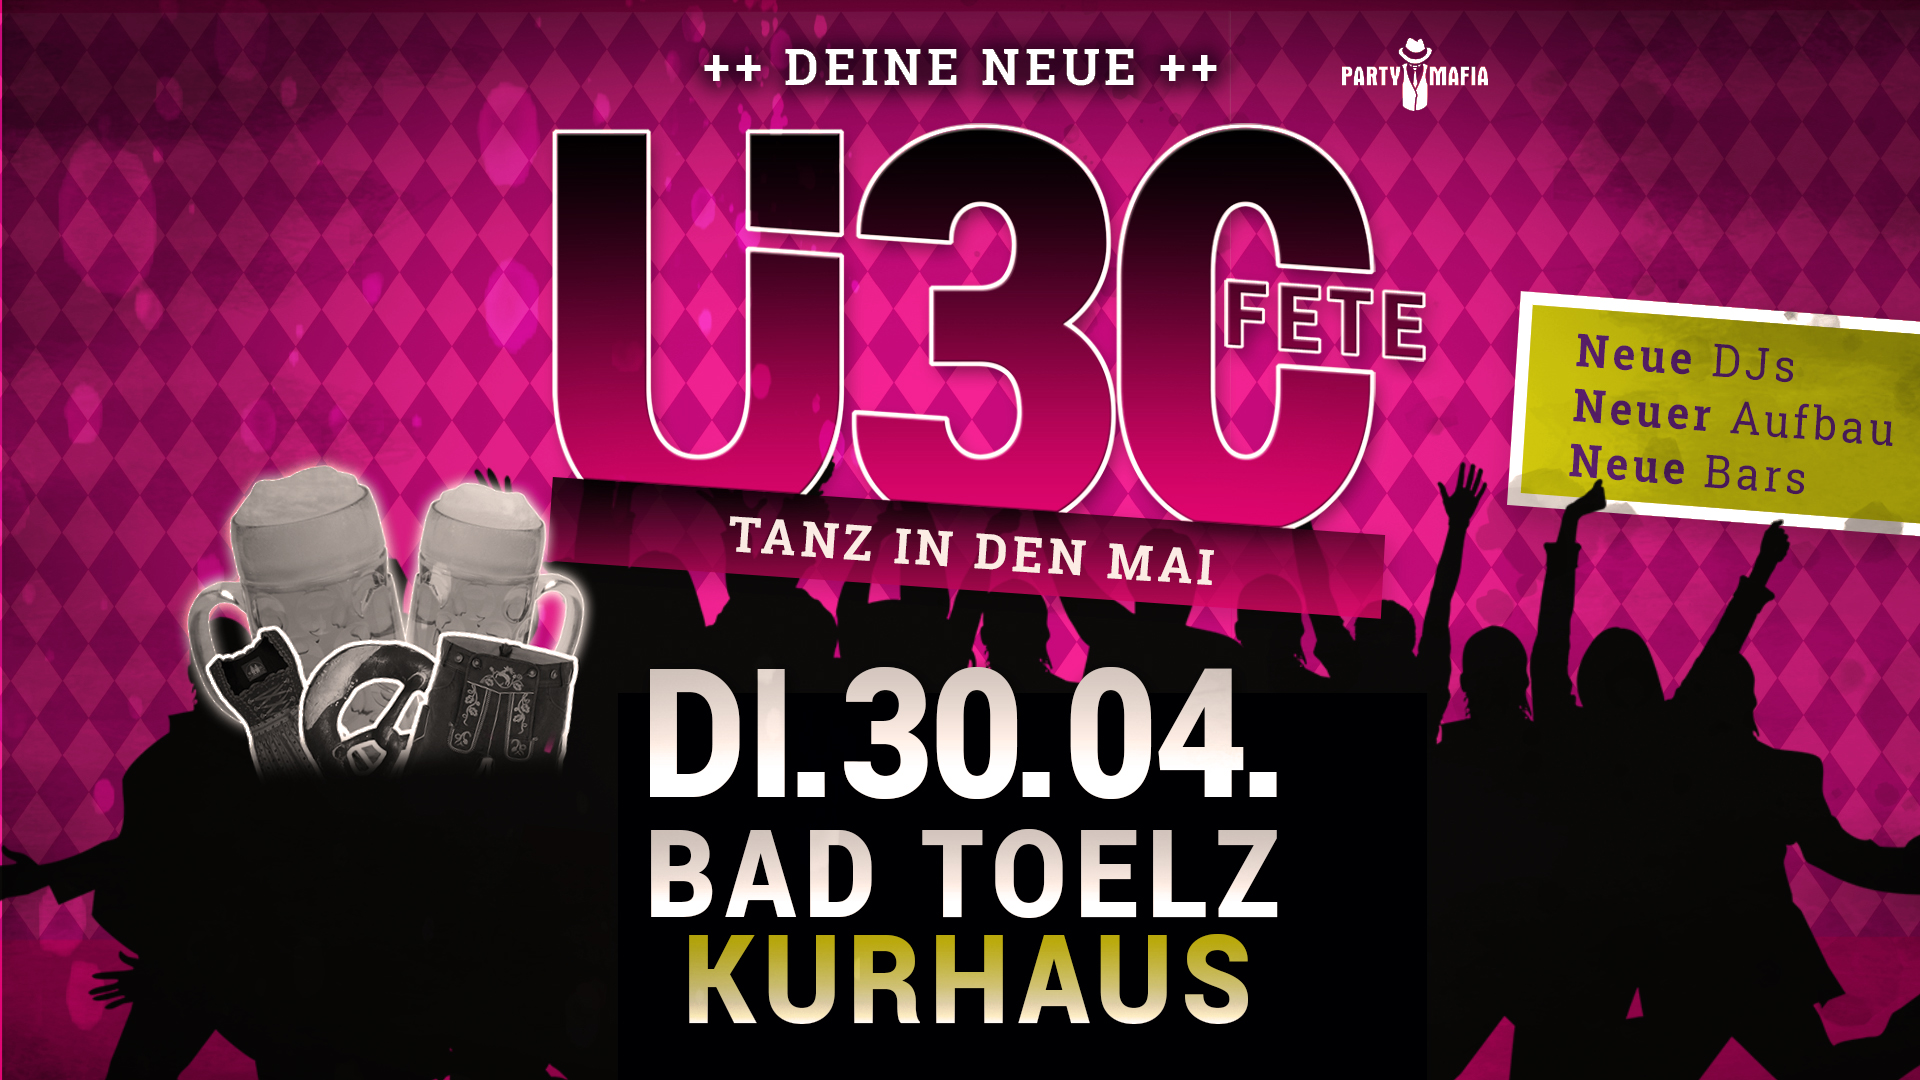 Party Highlight, Kultparty in Bad Tölz: Die neue Ü30 FETE